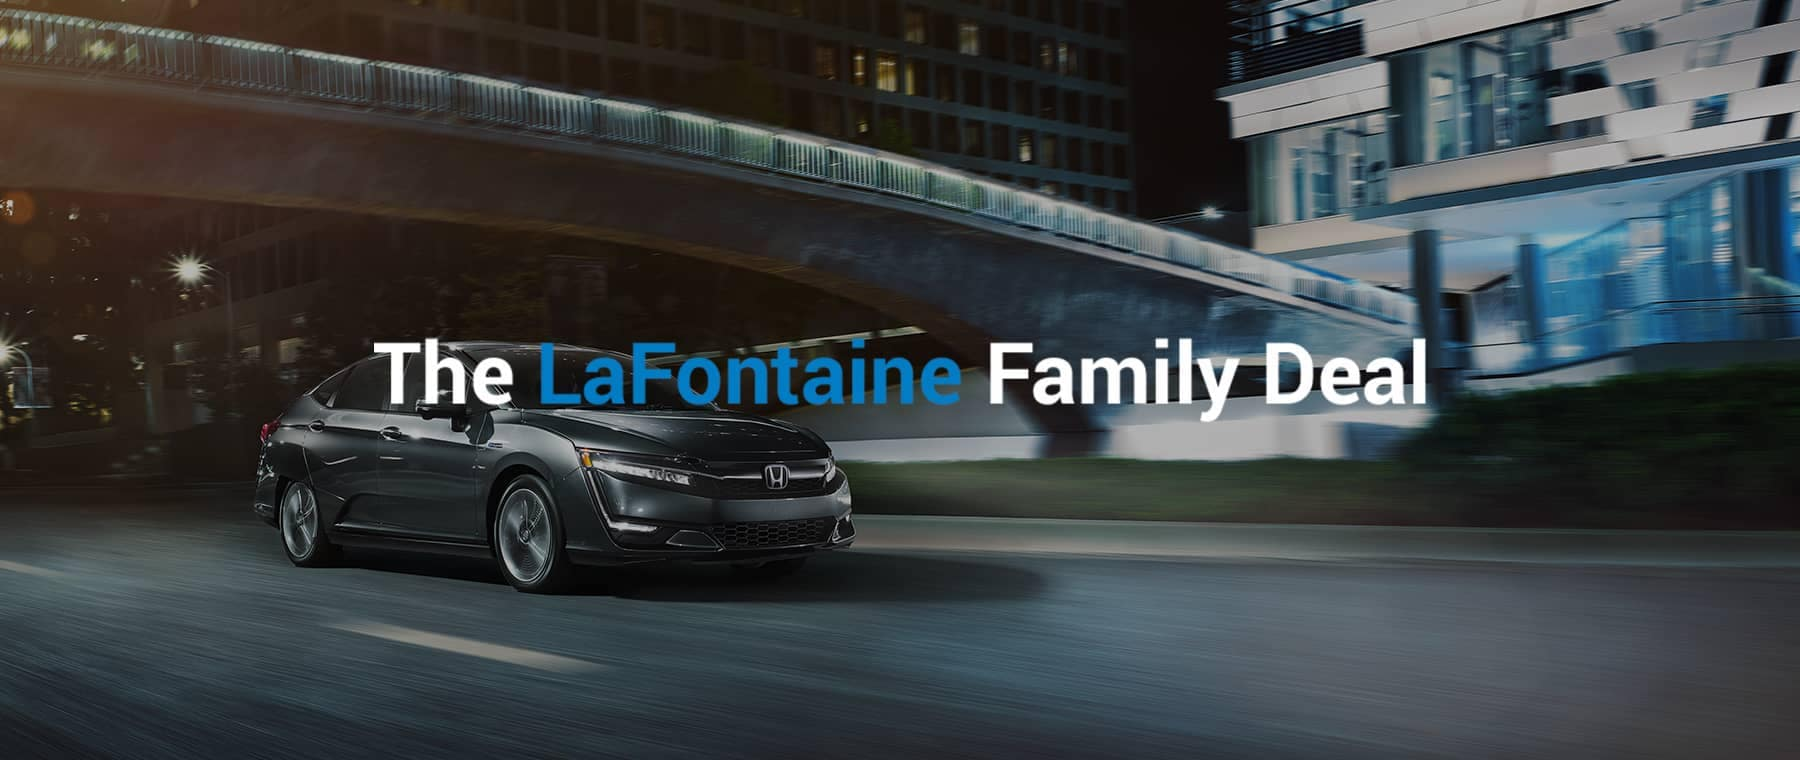 The LaFontaine Family Deal